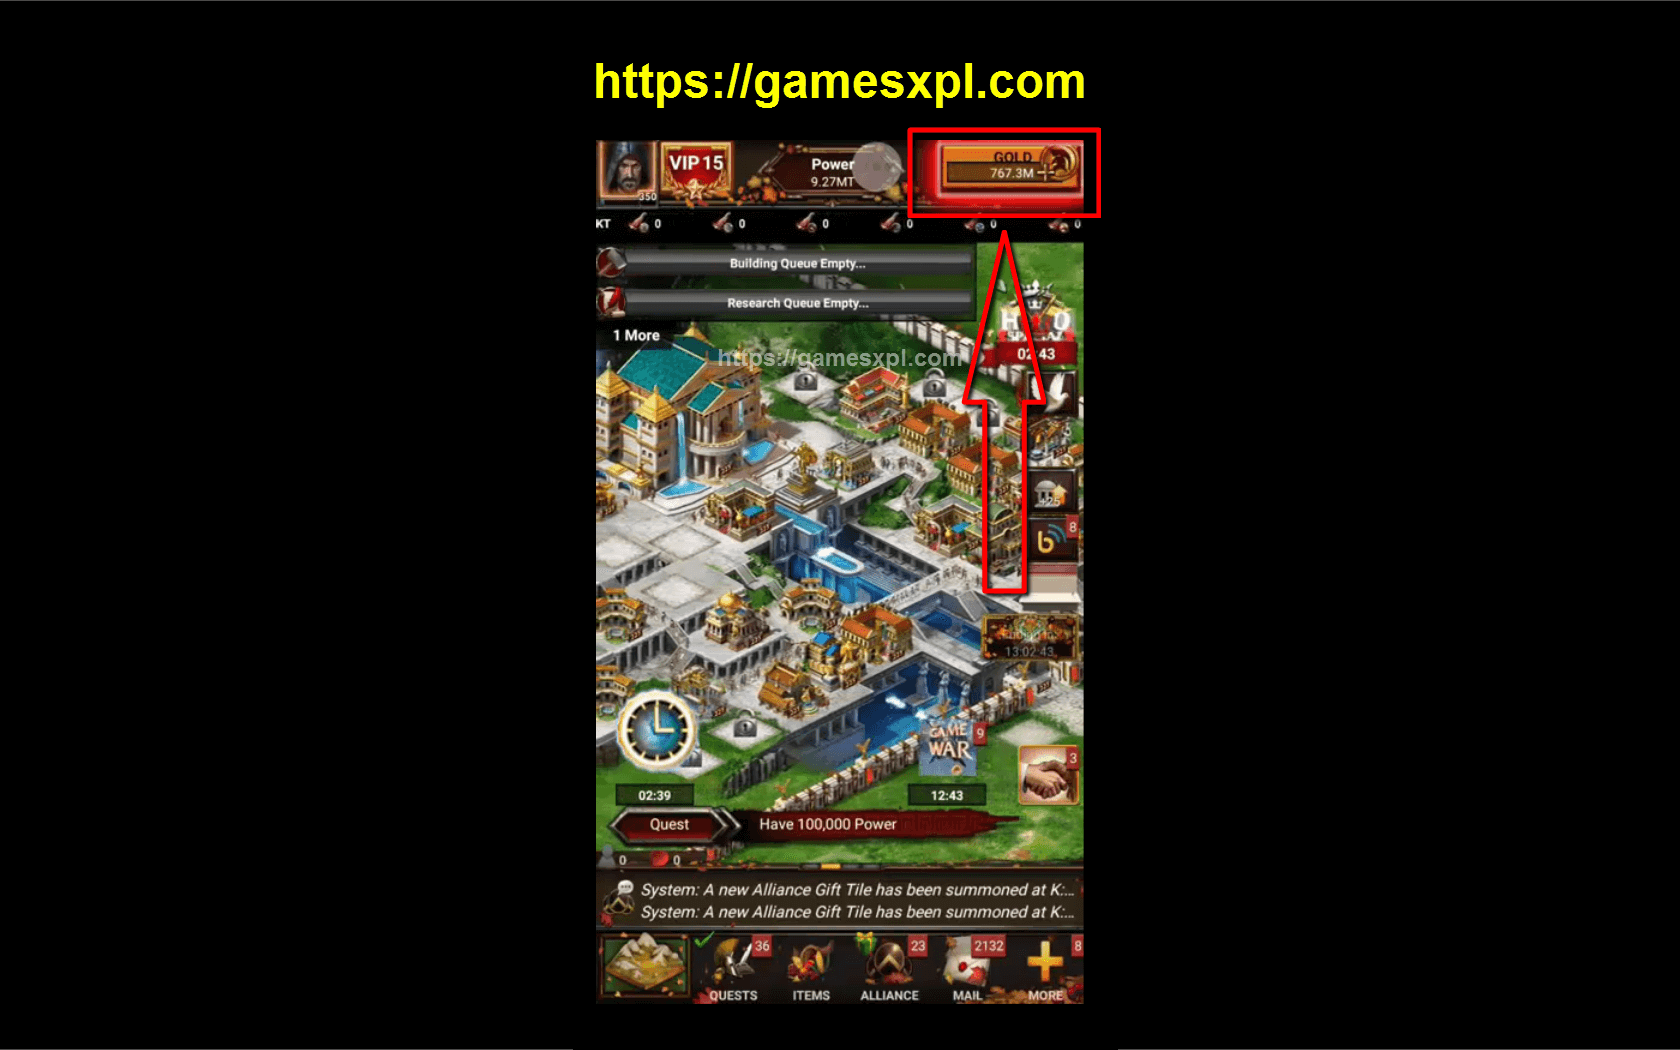 Game of War Fire Age Hack Mod Apk – How to Get Unlimited Gold – iOS, Android, Windows